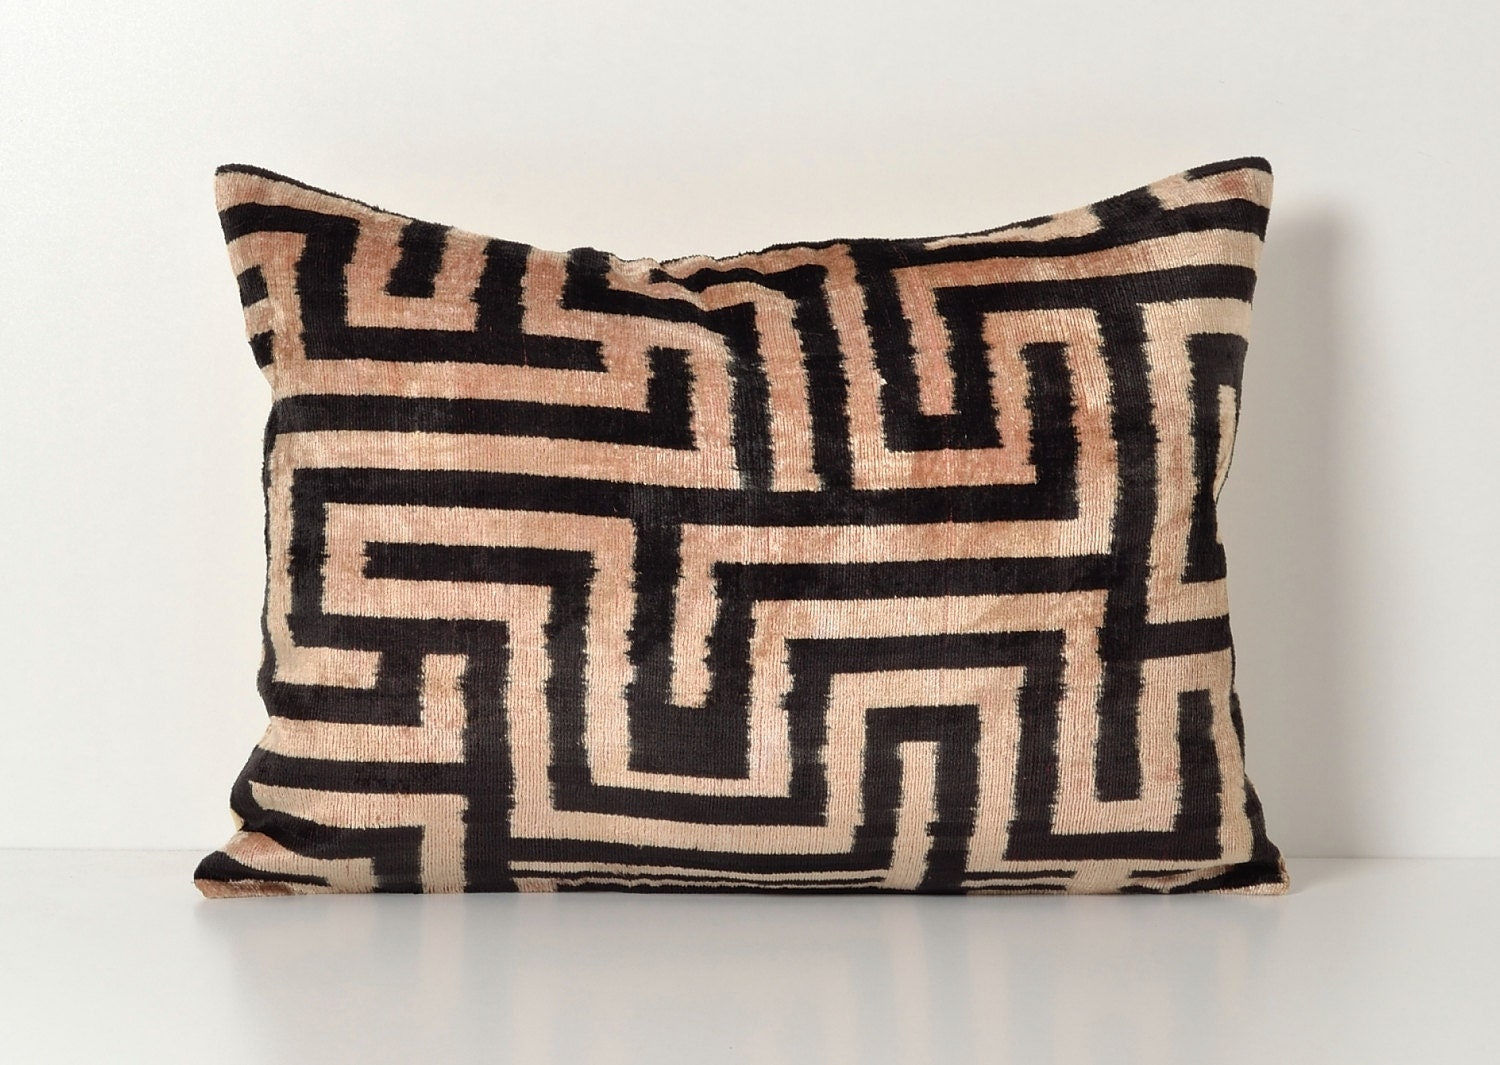 Ikat Throw Pillows Etsy : Black Ikat Pillow Ikat Pillows Couch Pillow by pillowme on Etsy